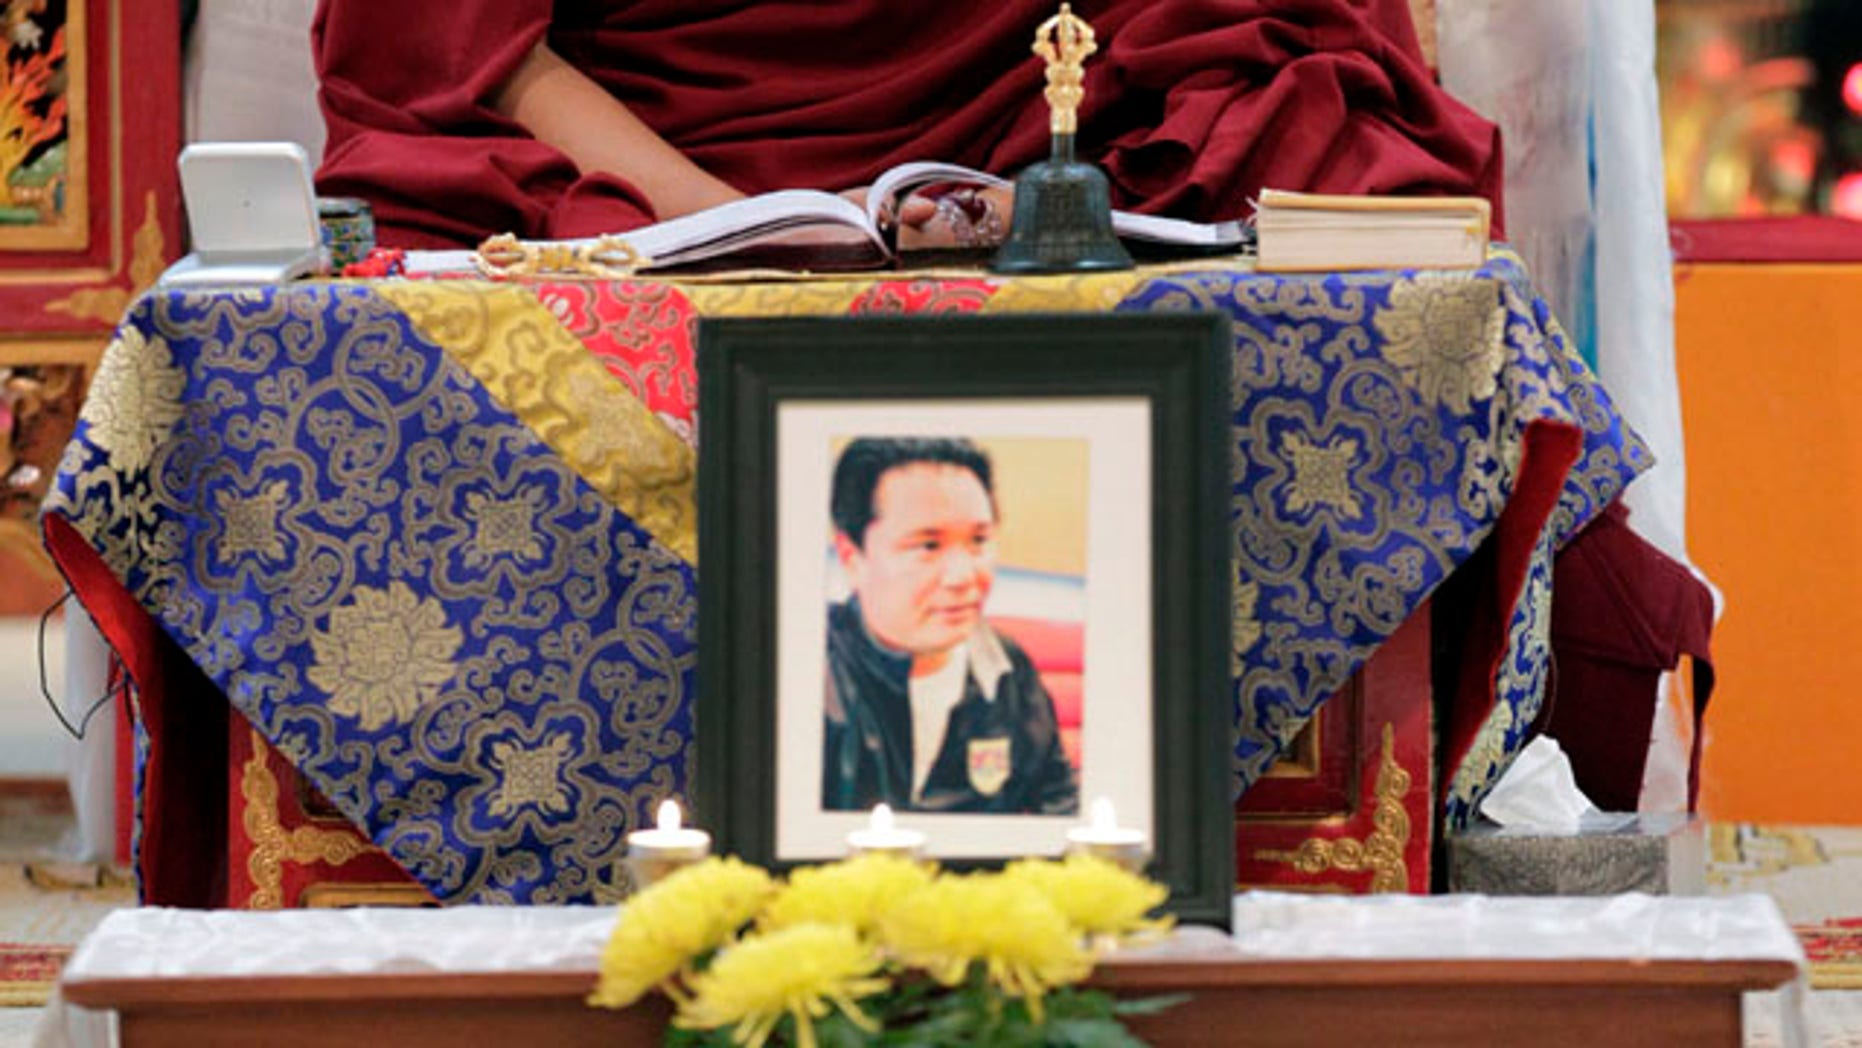 Feb. 15: The Venerable Arjia Rinpoche, director of The Tibetan Mongolian Buddhist Cultural Center, says a prayer behind a photograph of Jigme Norbu, the Dalai Lama's nephew, in Bloomington, Ind. Norbu was struck and killed by an SUV along a Florida coastal highway while on a walk to promote Tibetan independence from China.